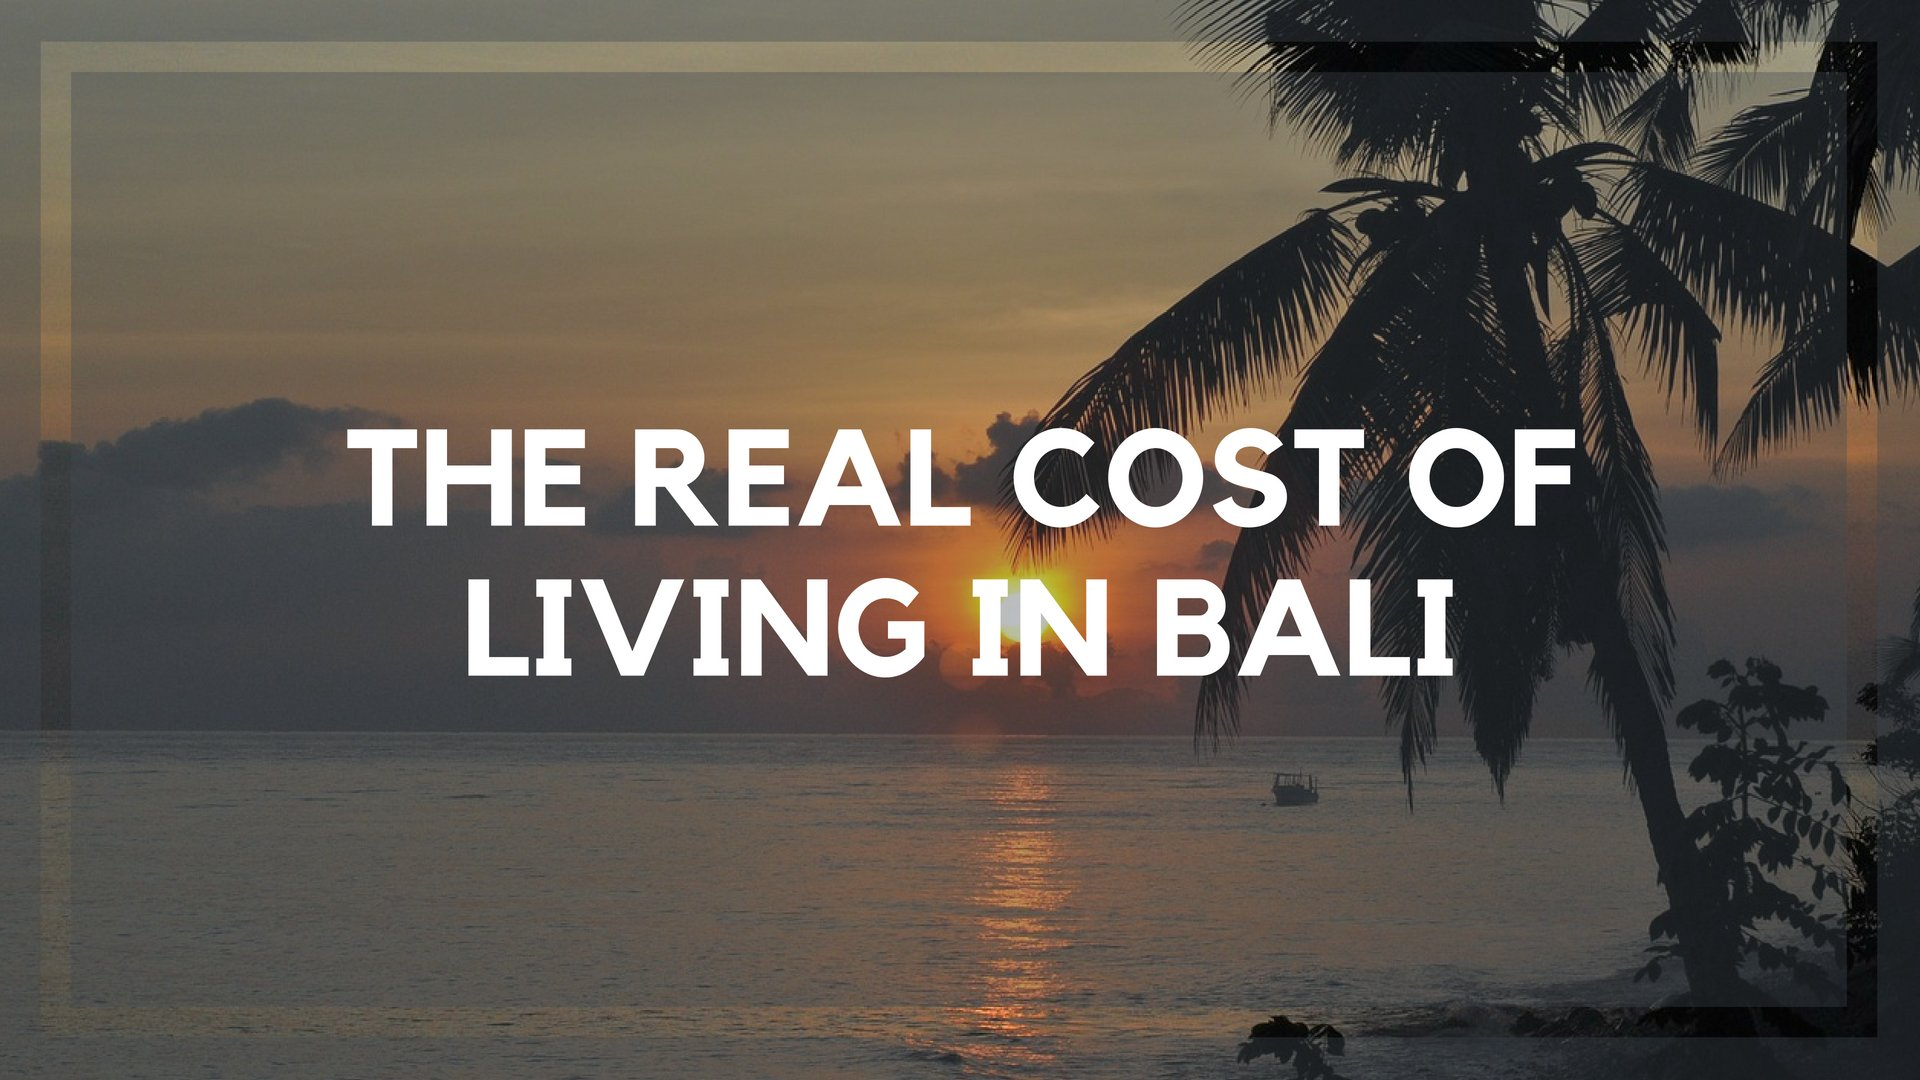 The Real Cost of Living in Bali